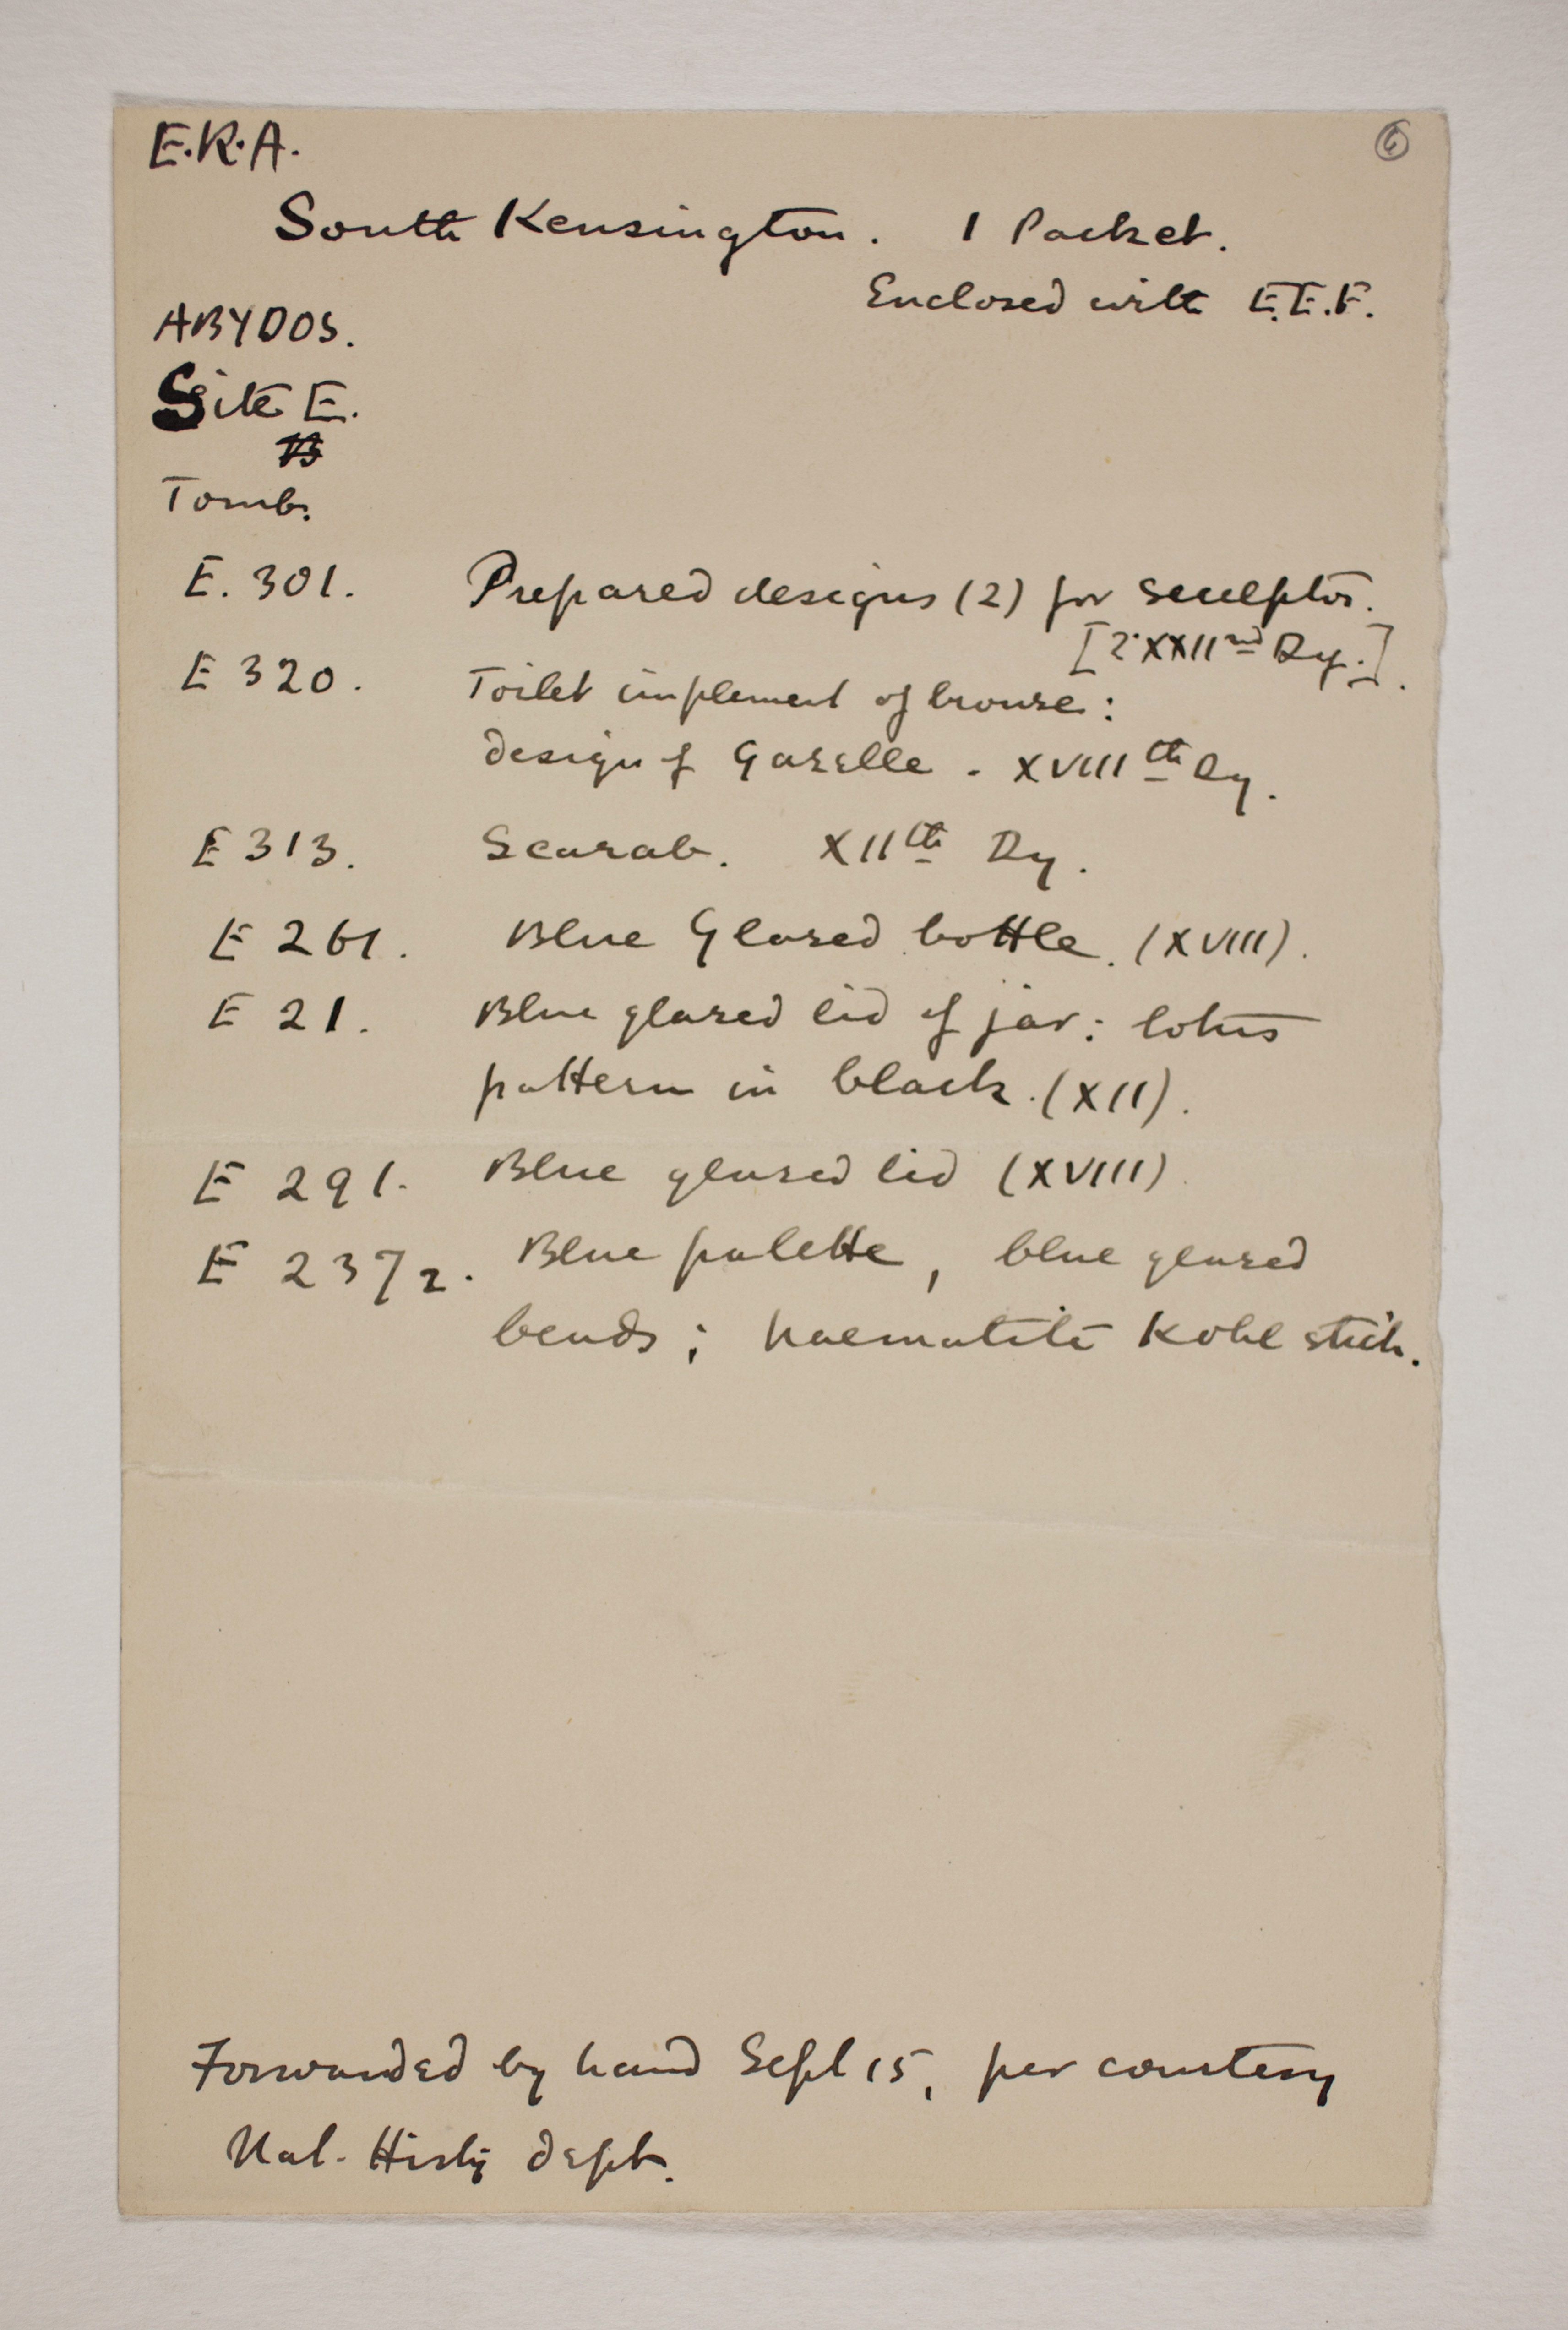 1899-1900 Abydos Individual institution list  PMA/WFP1/D/8/6